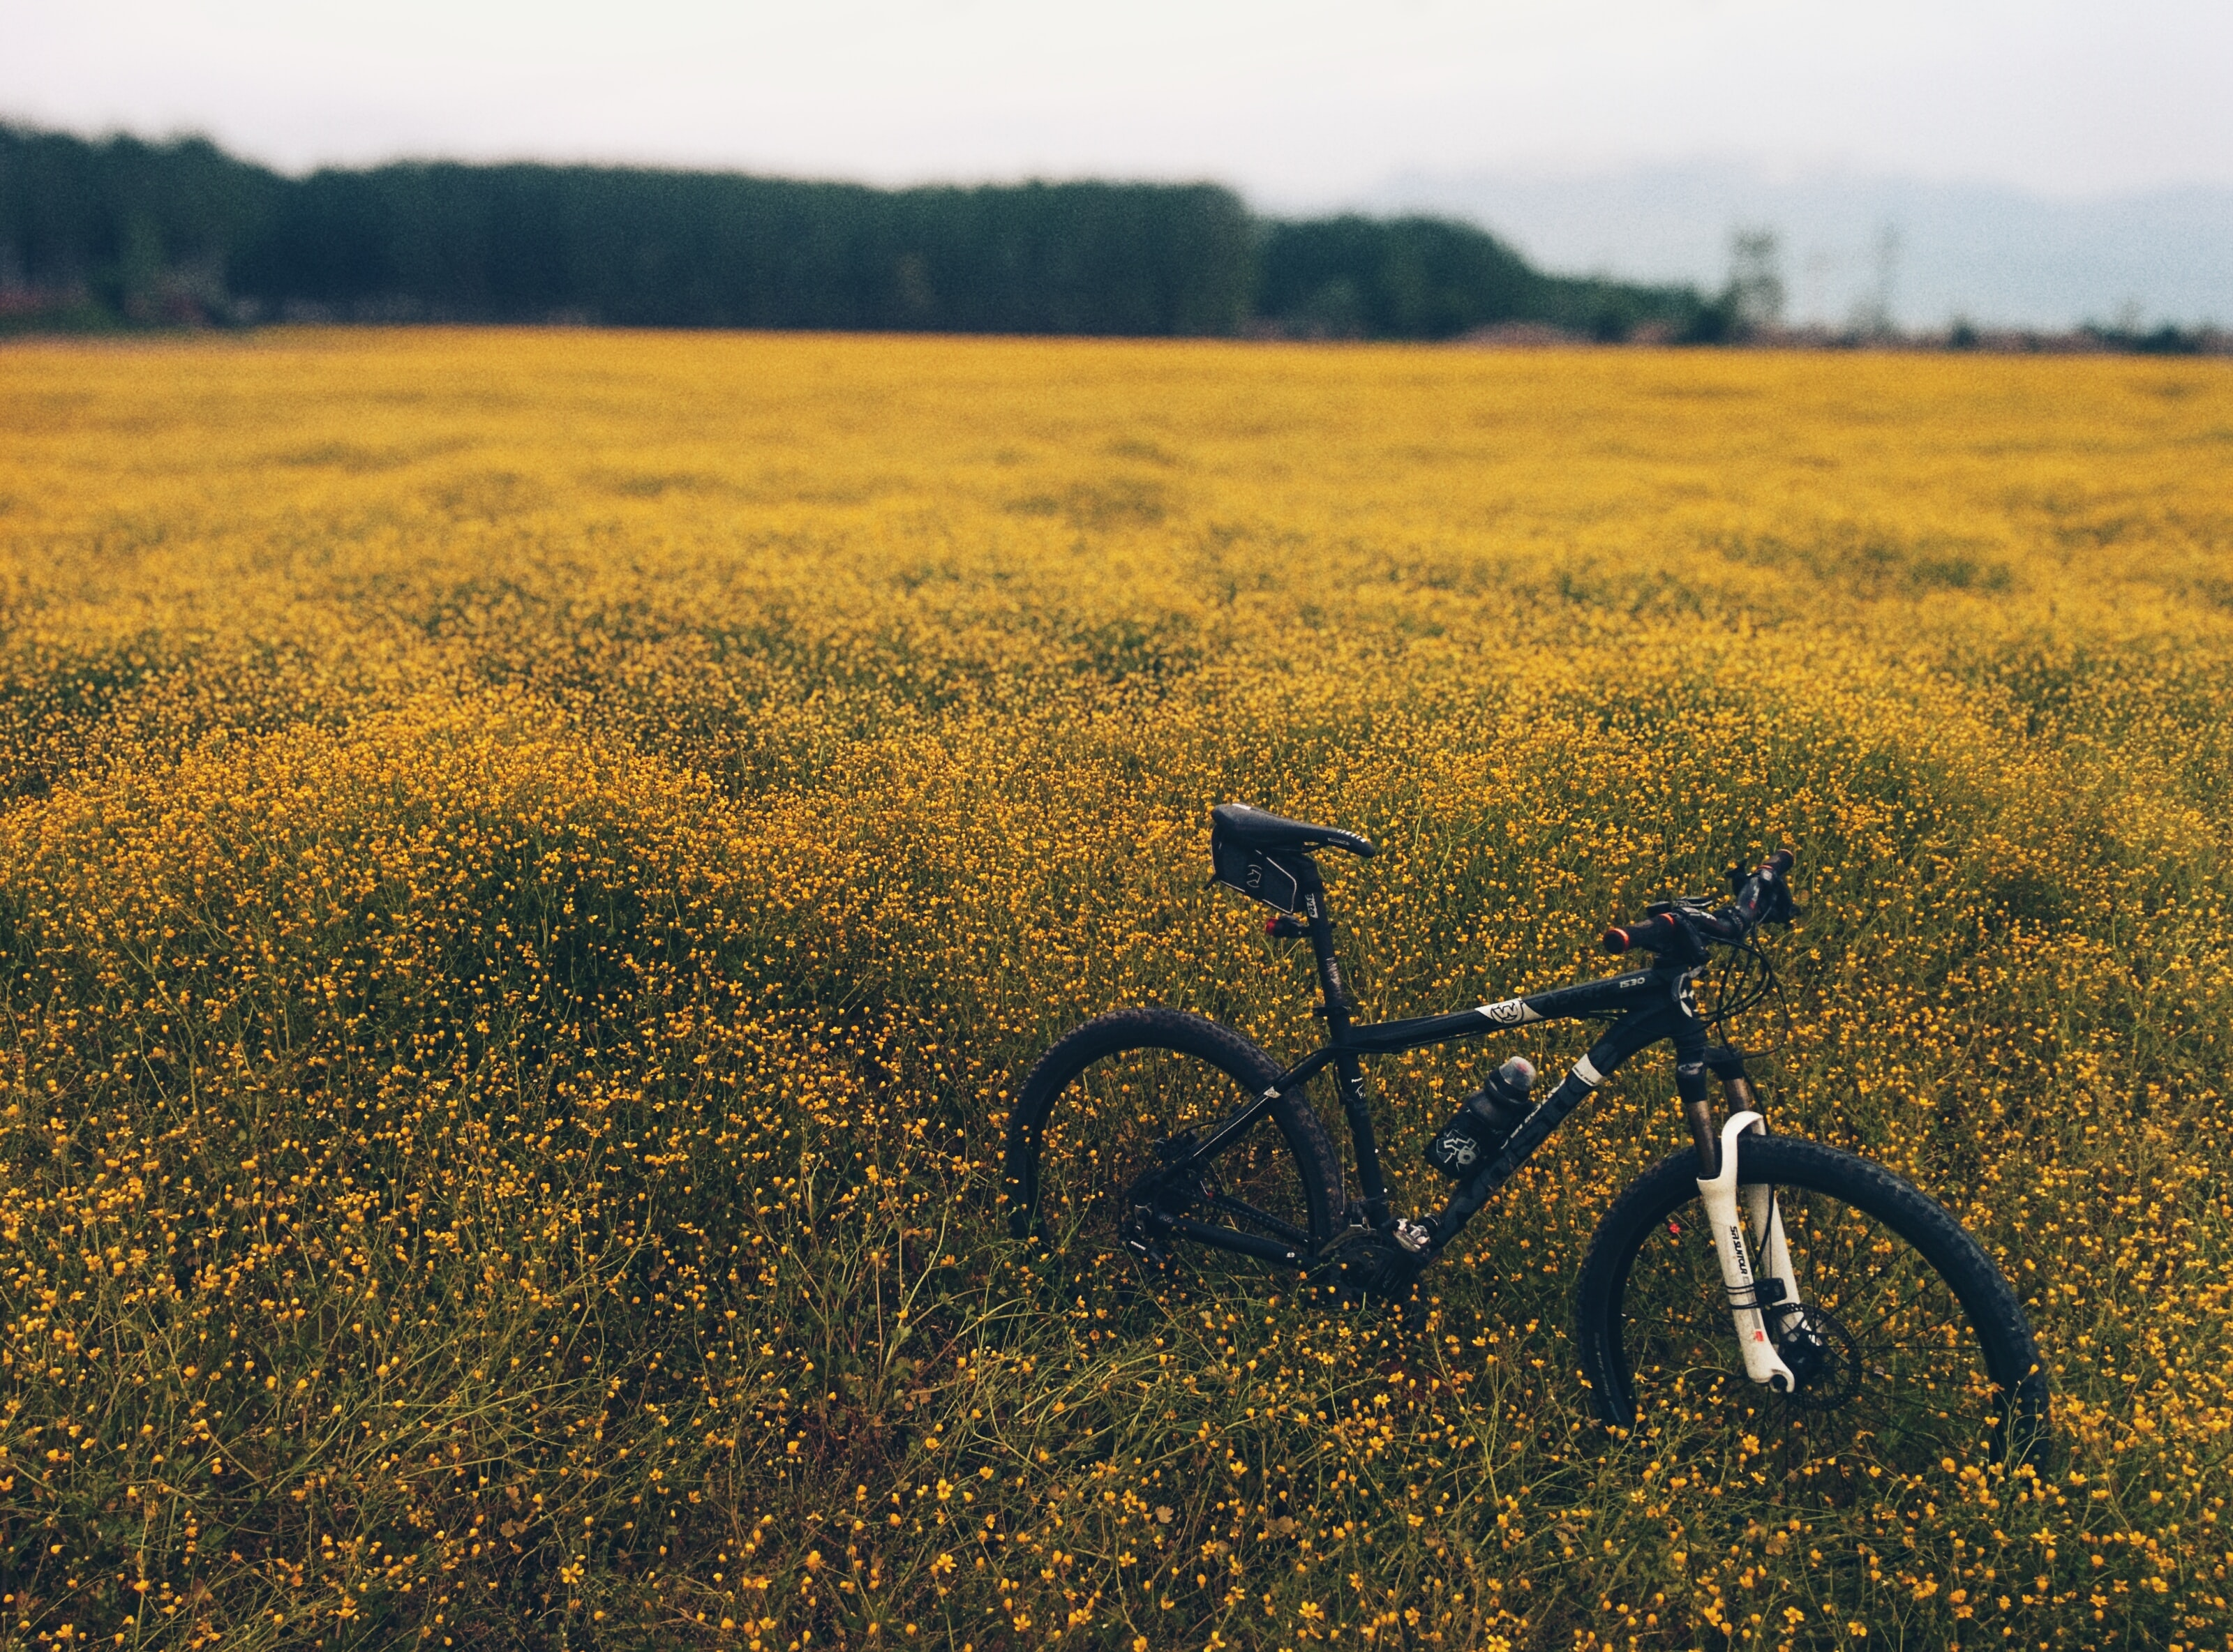 A mountain bike in the middle of a green and yellow meadow